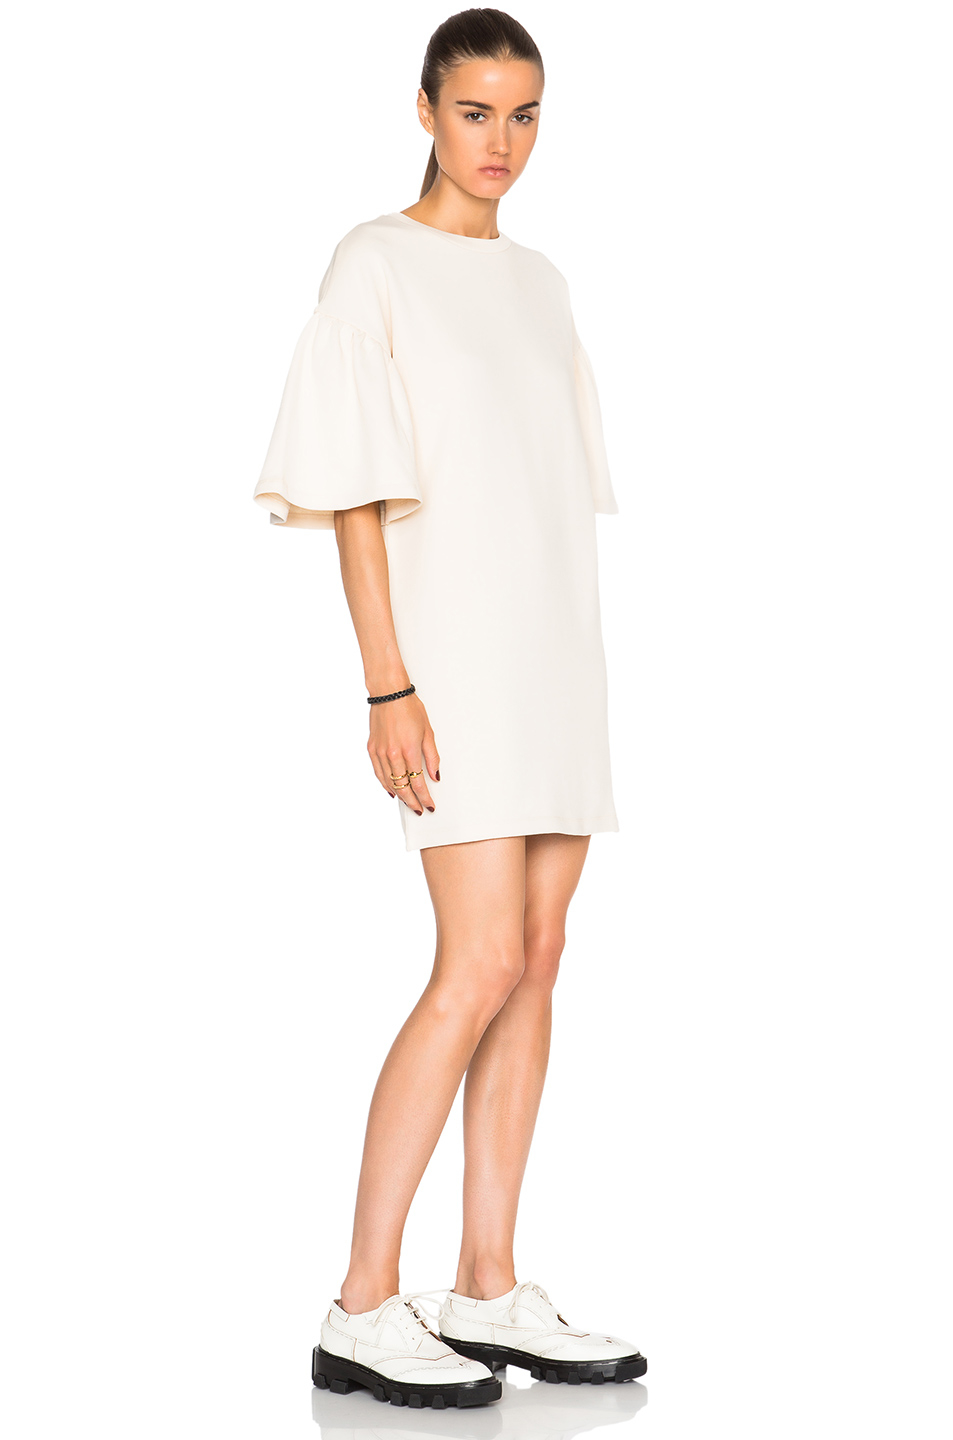 015d85e3142e MM6 by Maison Martin Margiela Puff Sleeve Sweatshirt Dress in ...